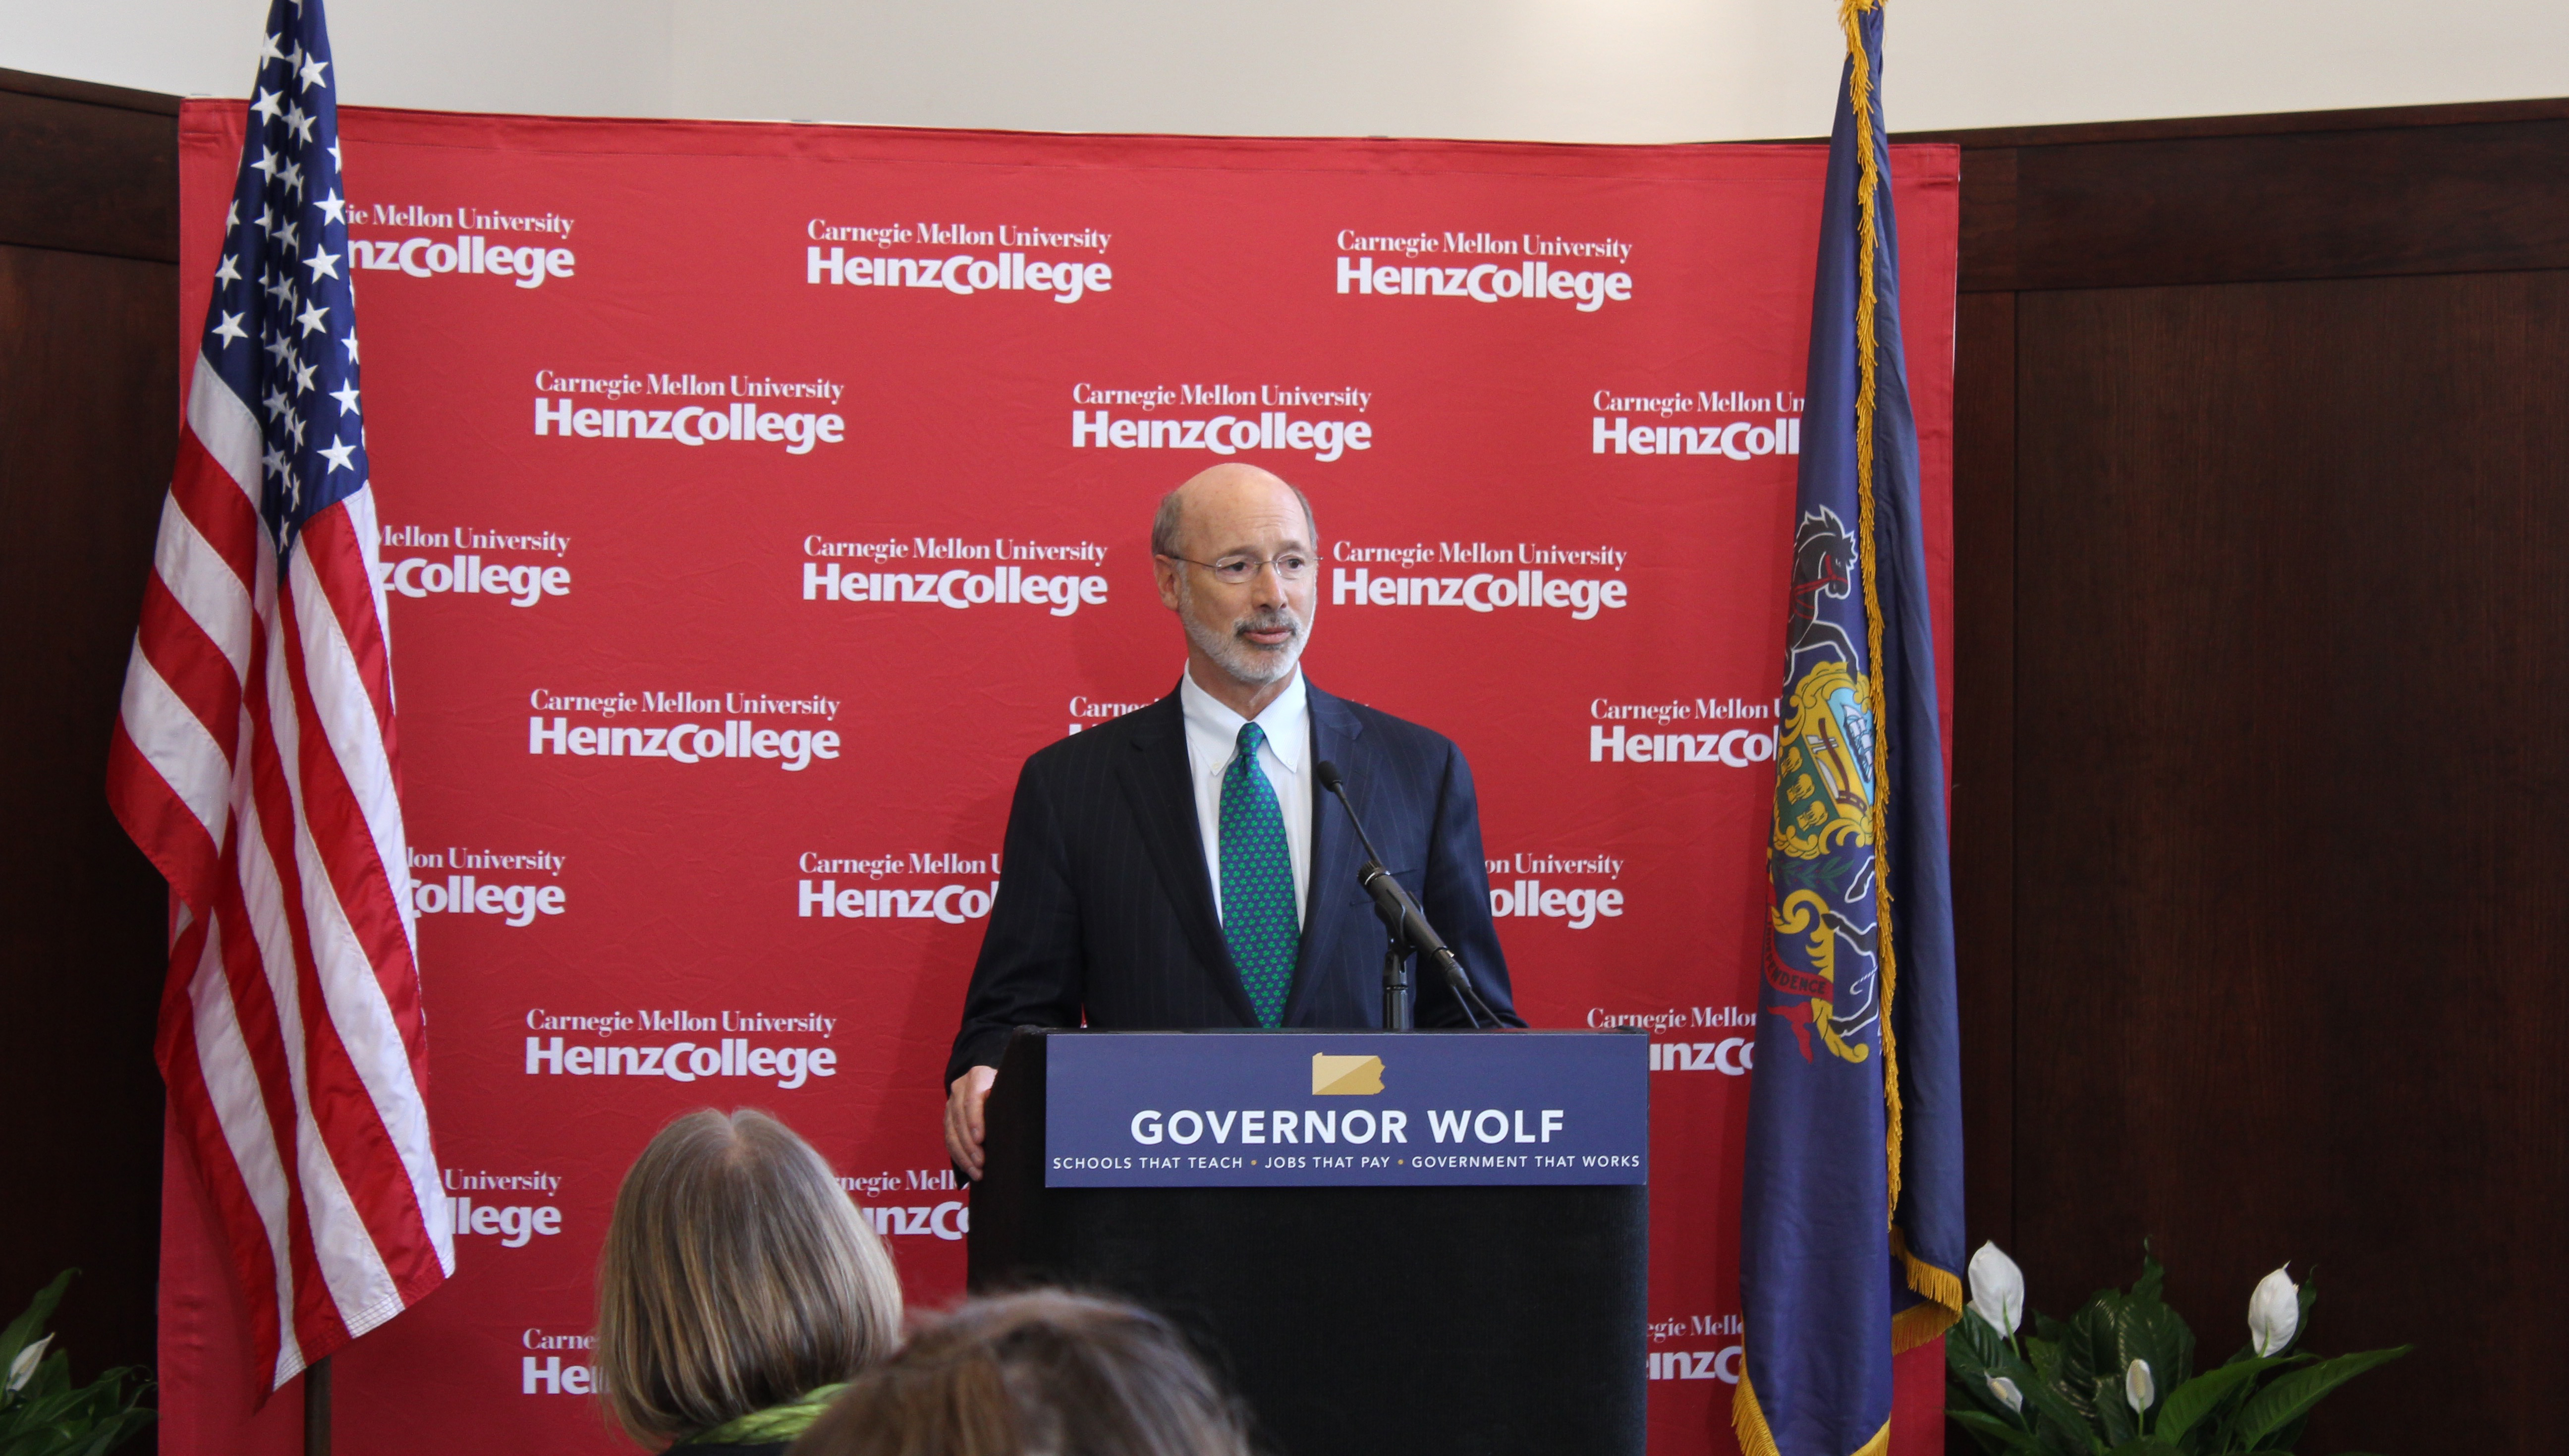 Pennsylvania Governor Tom Wolf speaking at Heinz College